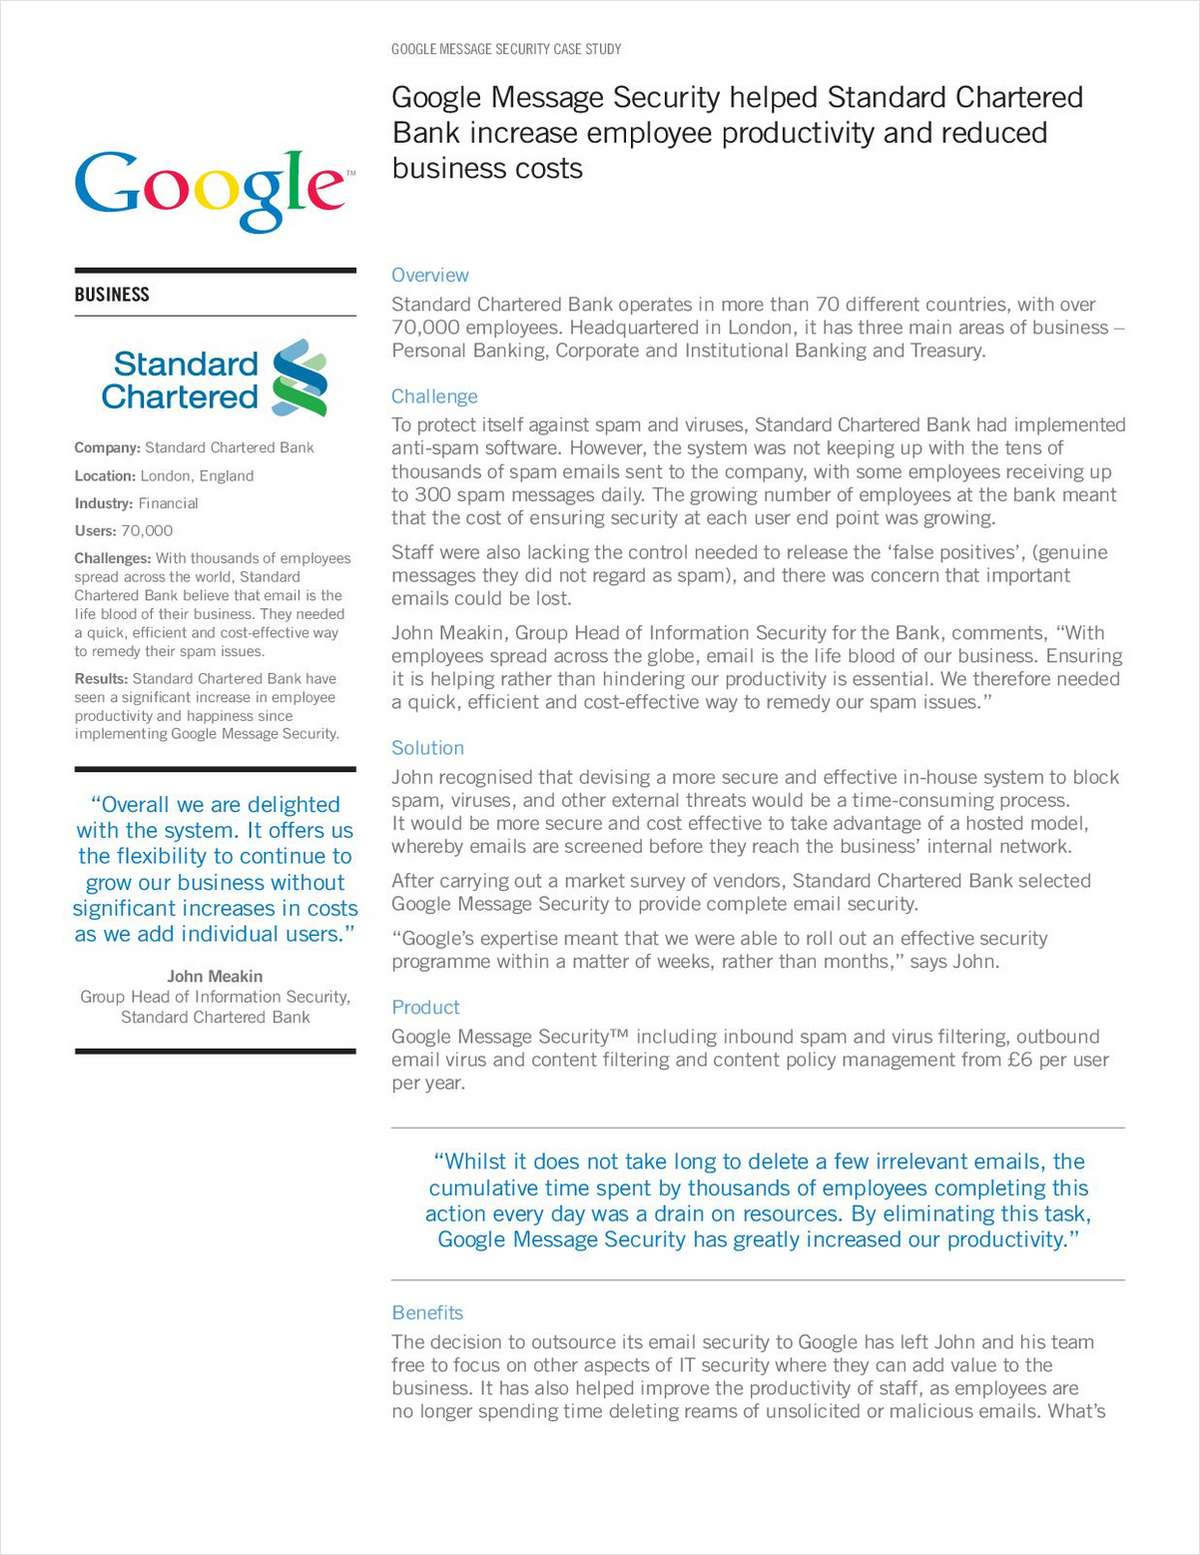 Global Financial Services Company Protects Their Email Infrastructure with Google Message Security